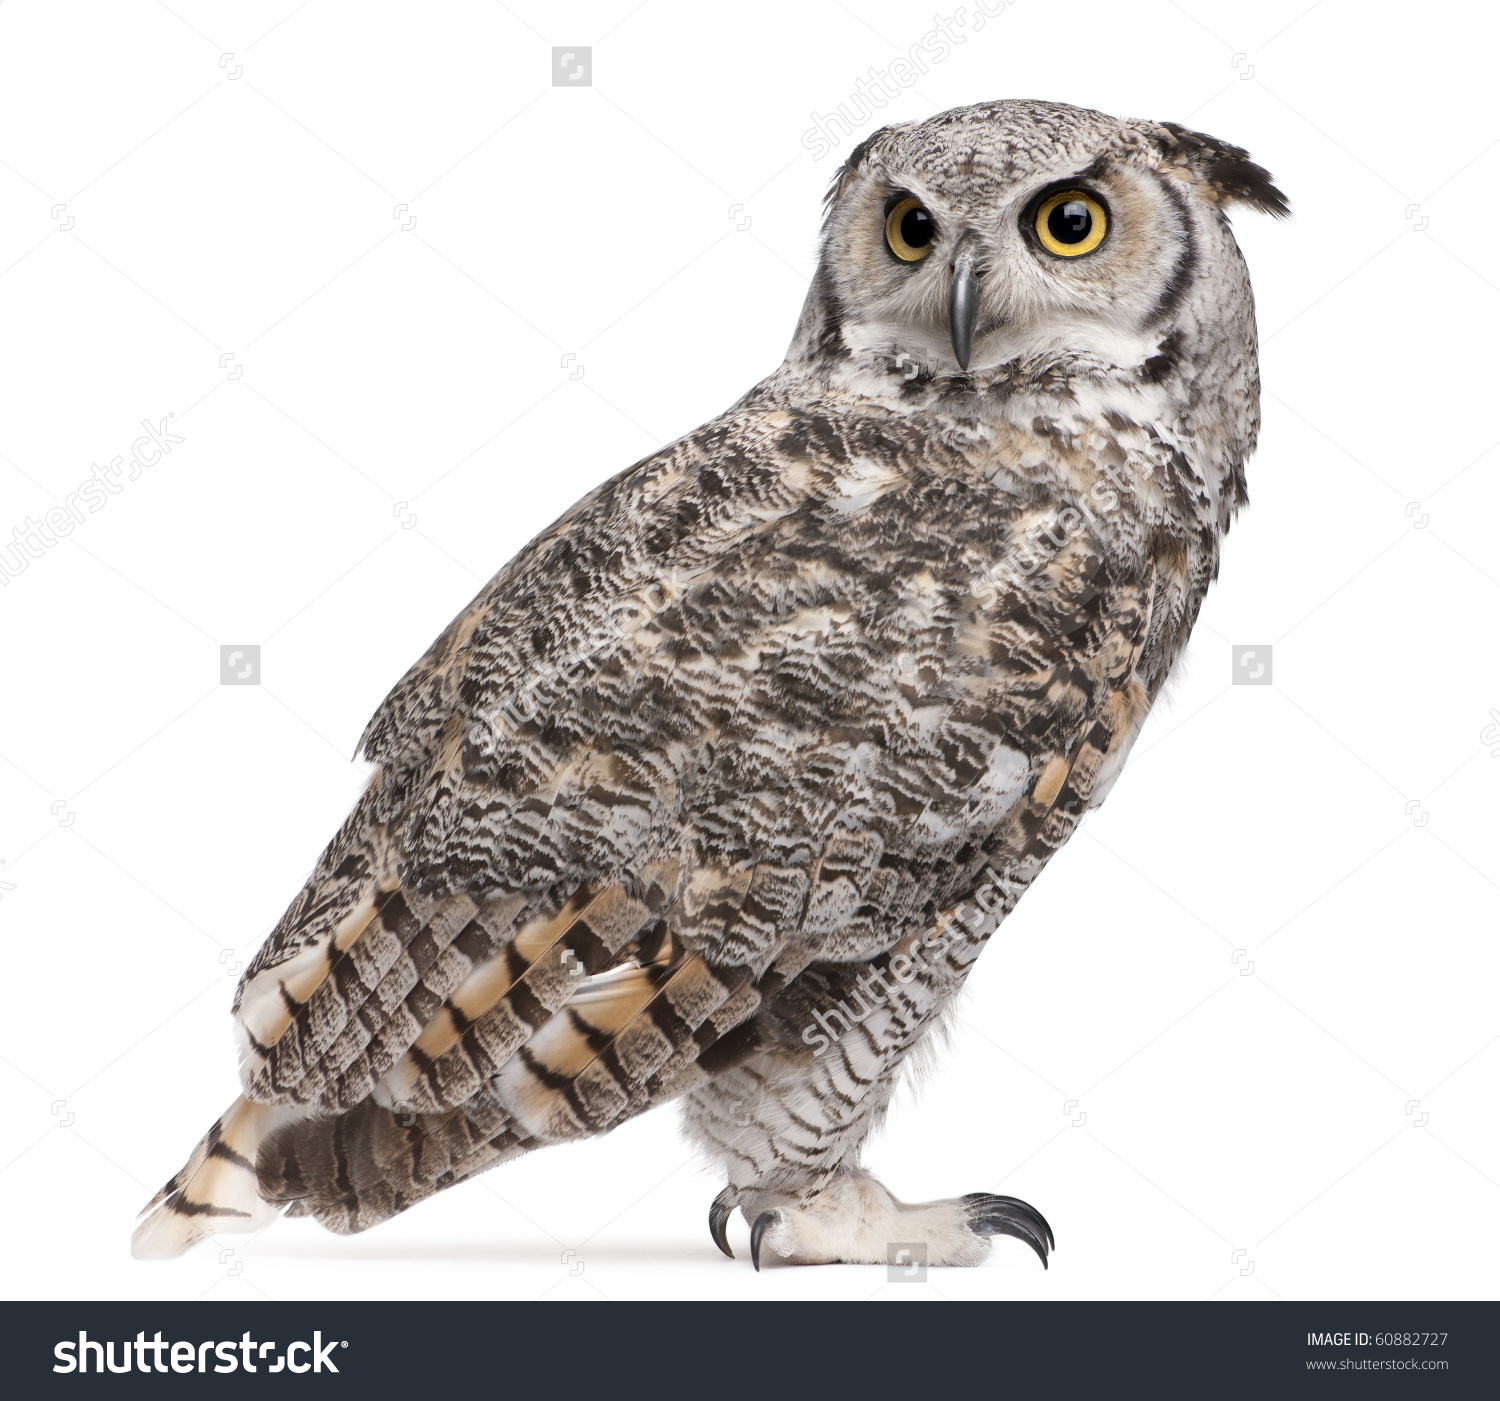 Horned Owl clipart #6, Download drawings